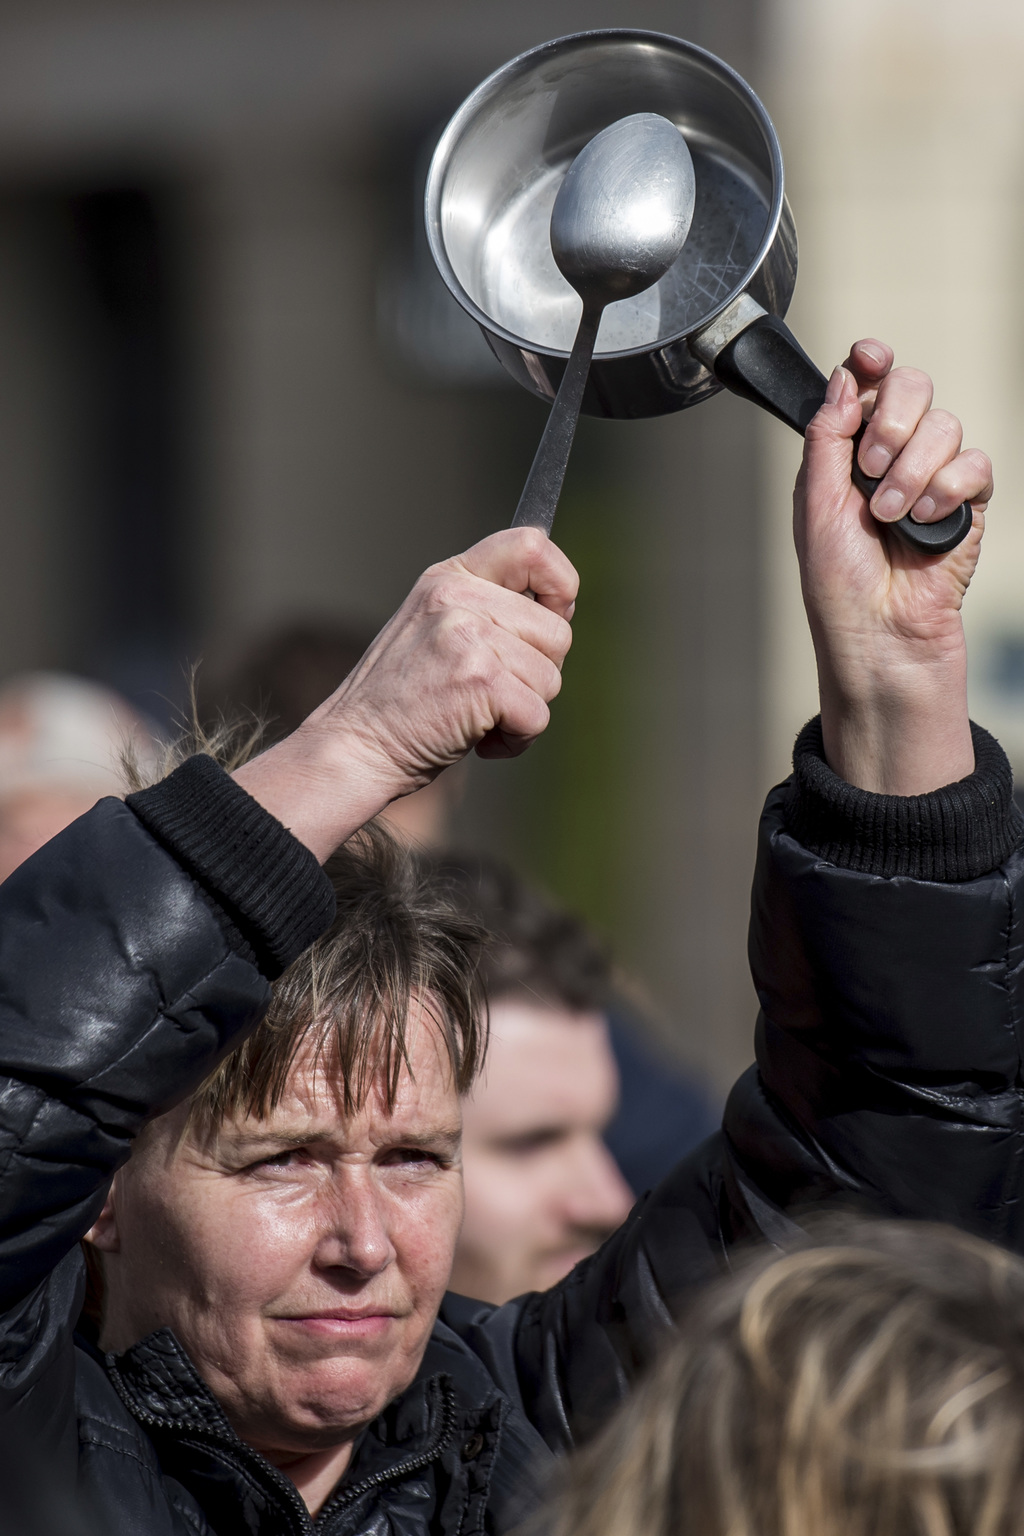 An activist beats with spoon on saucepan during an anti corruption rally in Paris, Sunday, March 5, 2017 while France's presidential ca...